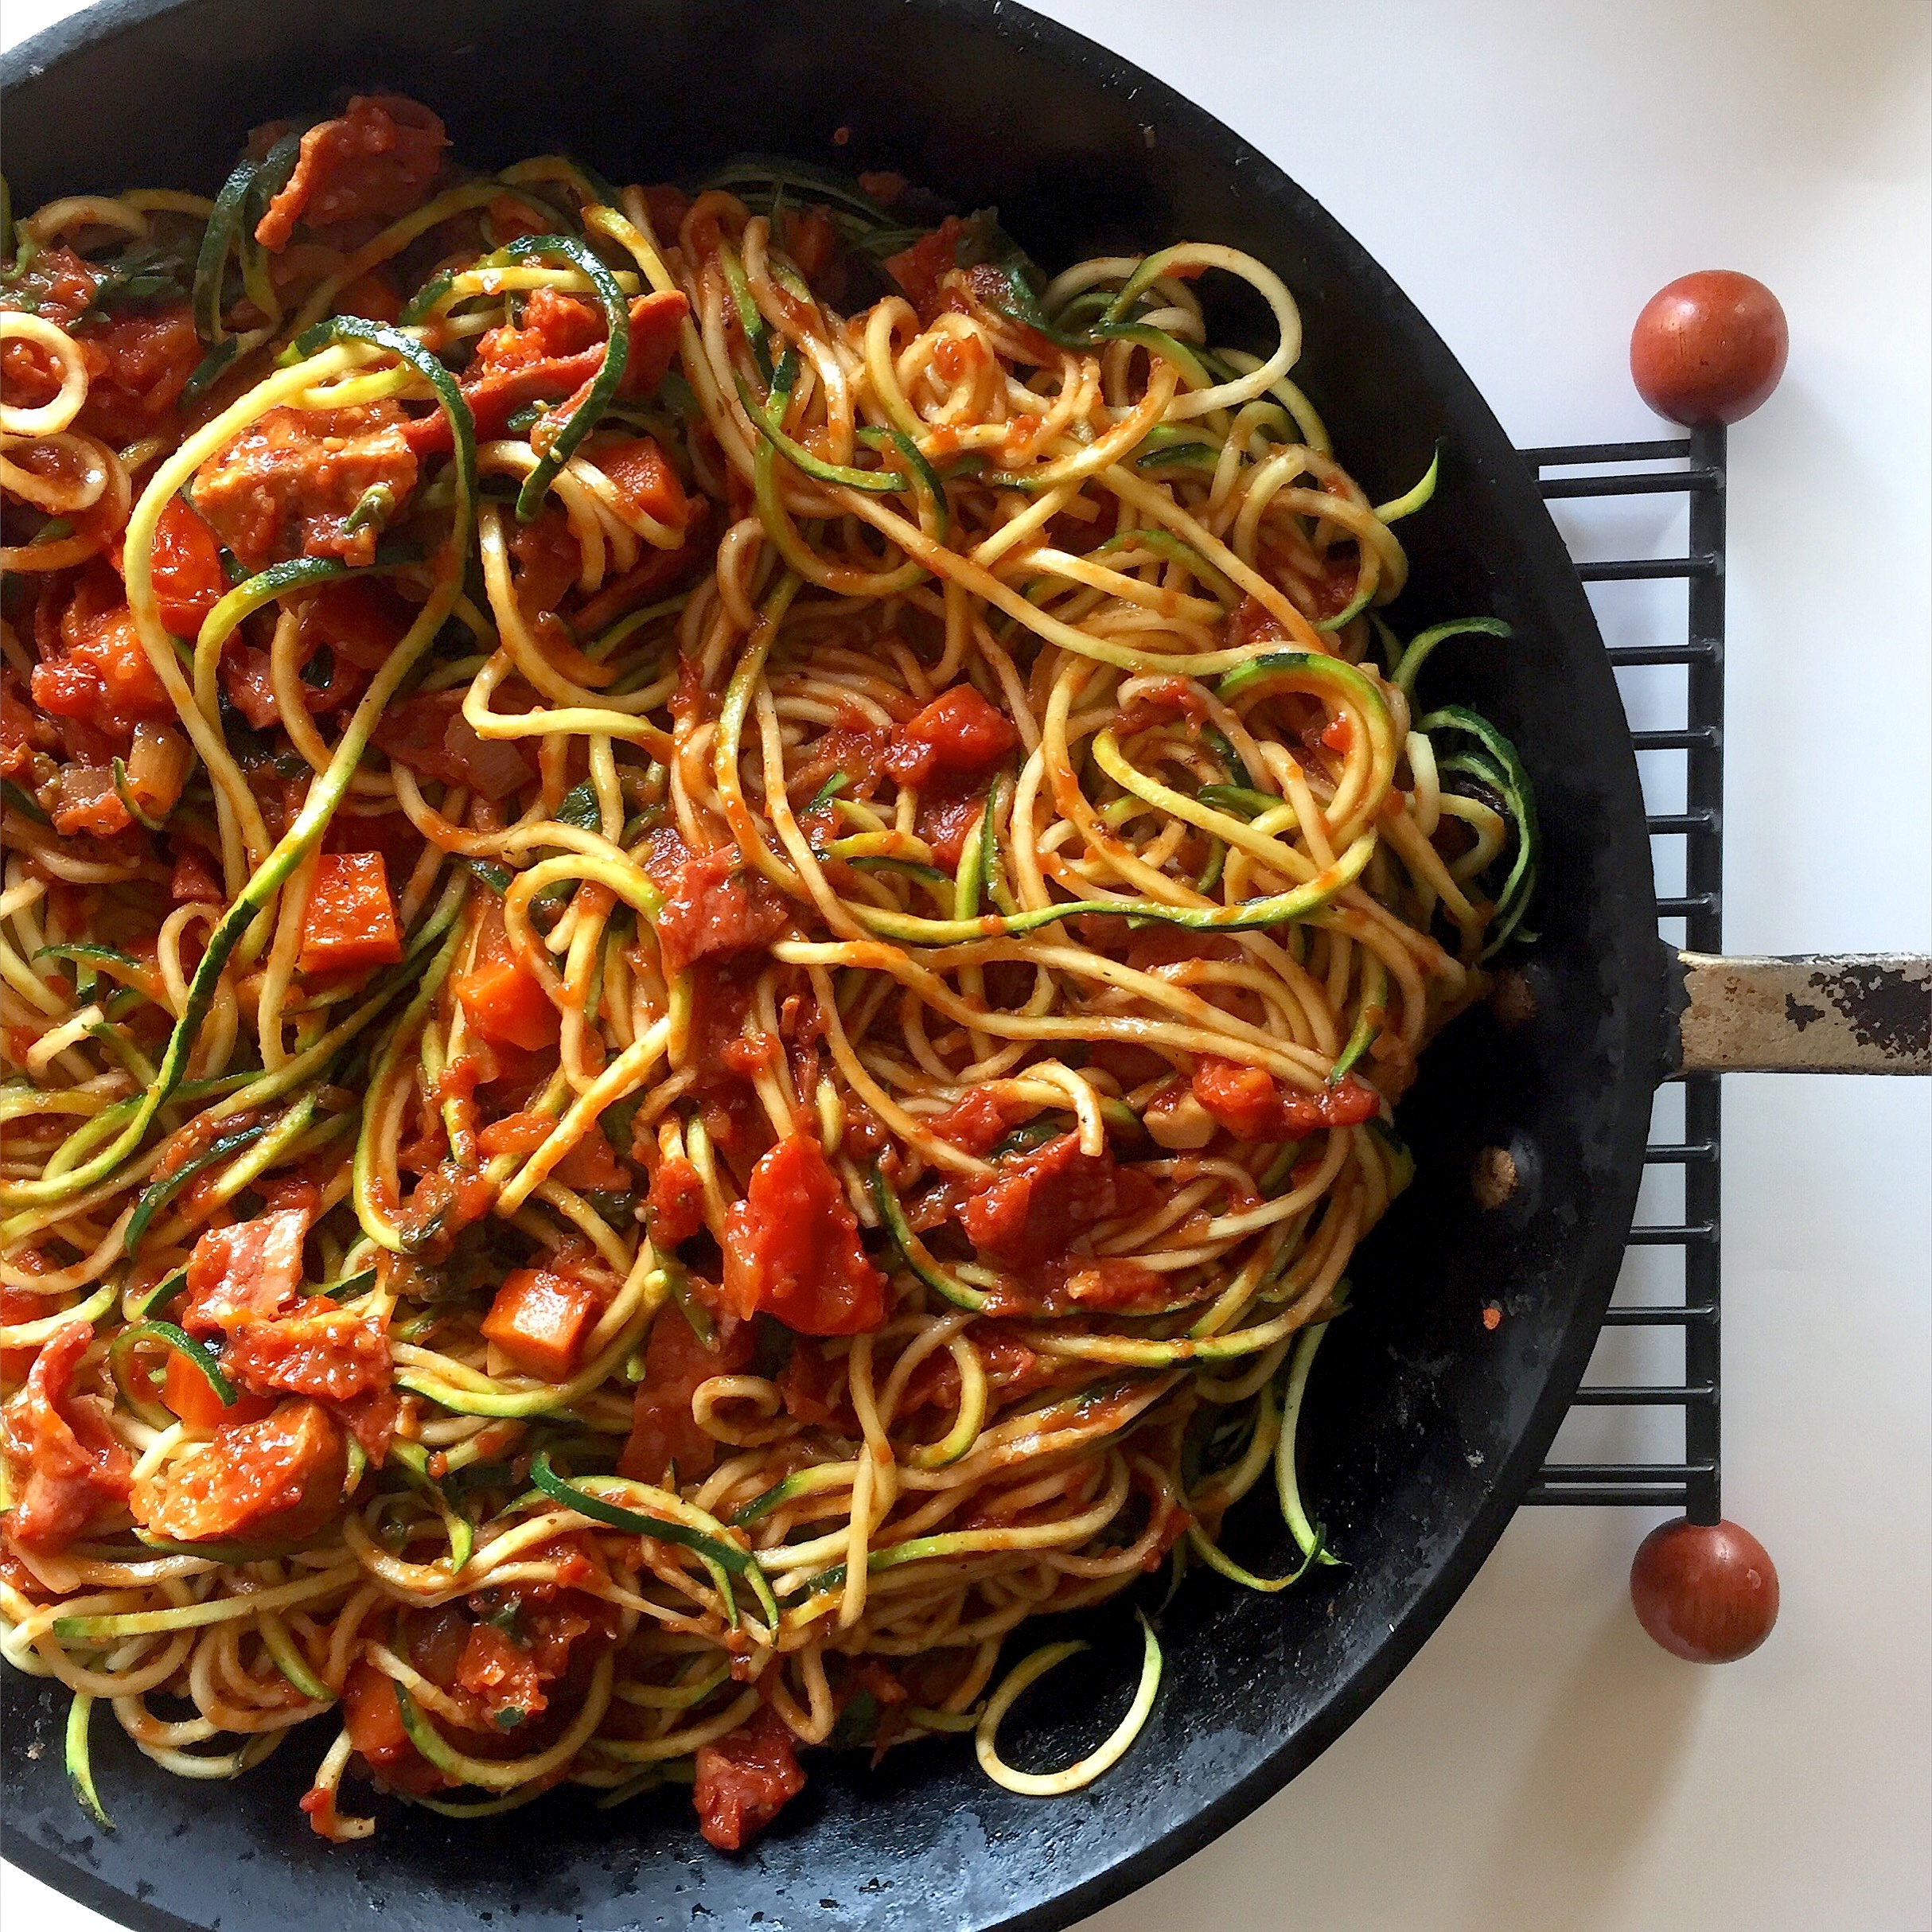 Spiralized zucchini noodles with chicken meatballs